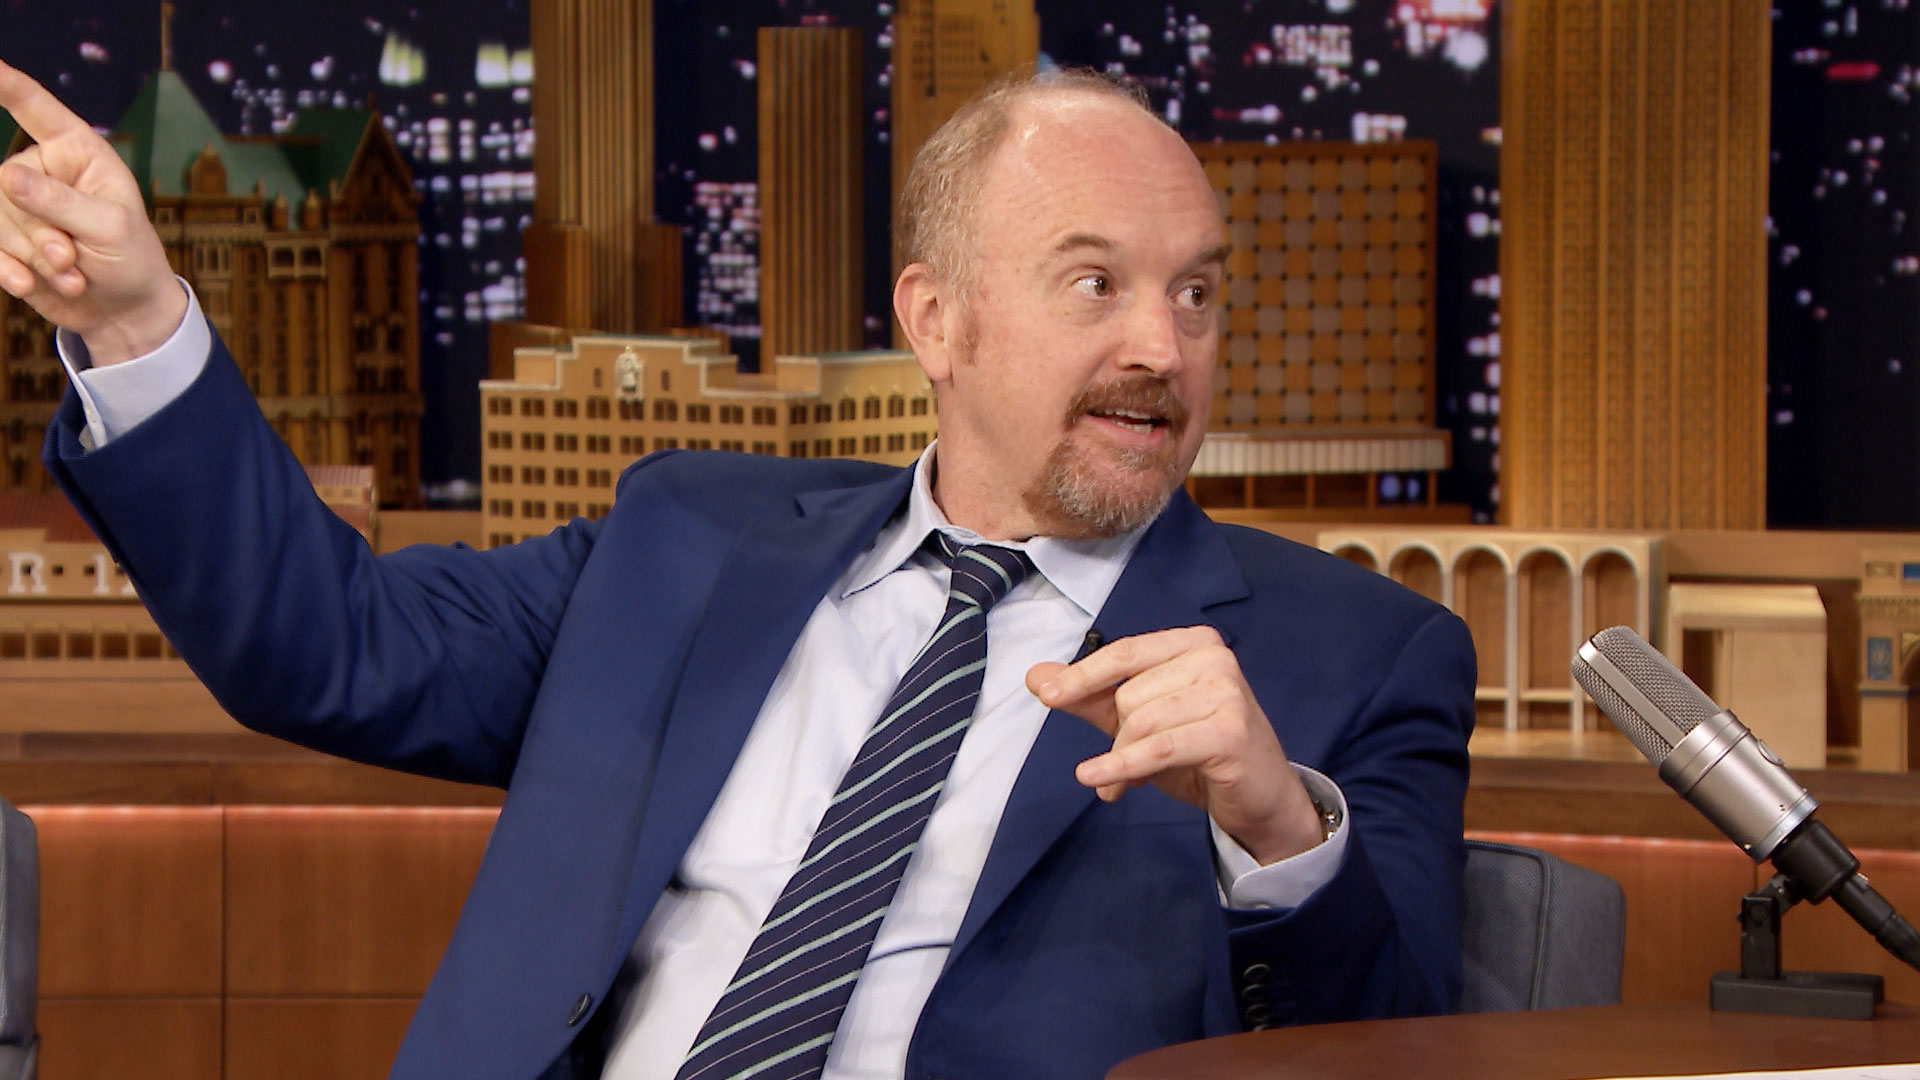 Louis C.K. Had a Traumatic Boating Incident with His Daughter